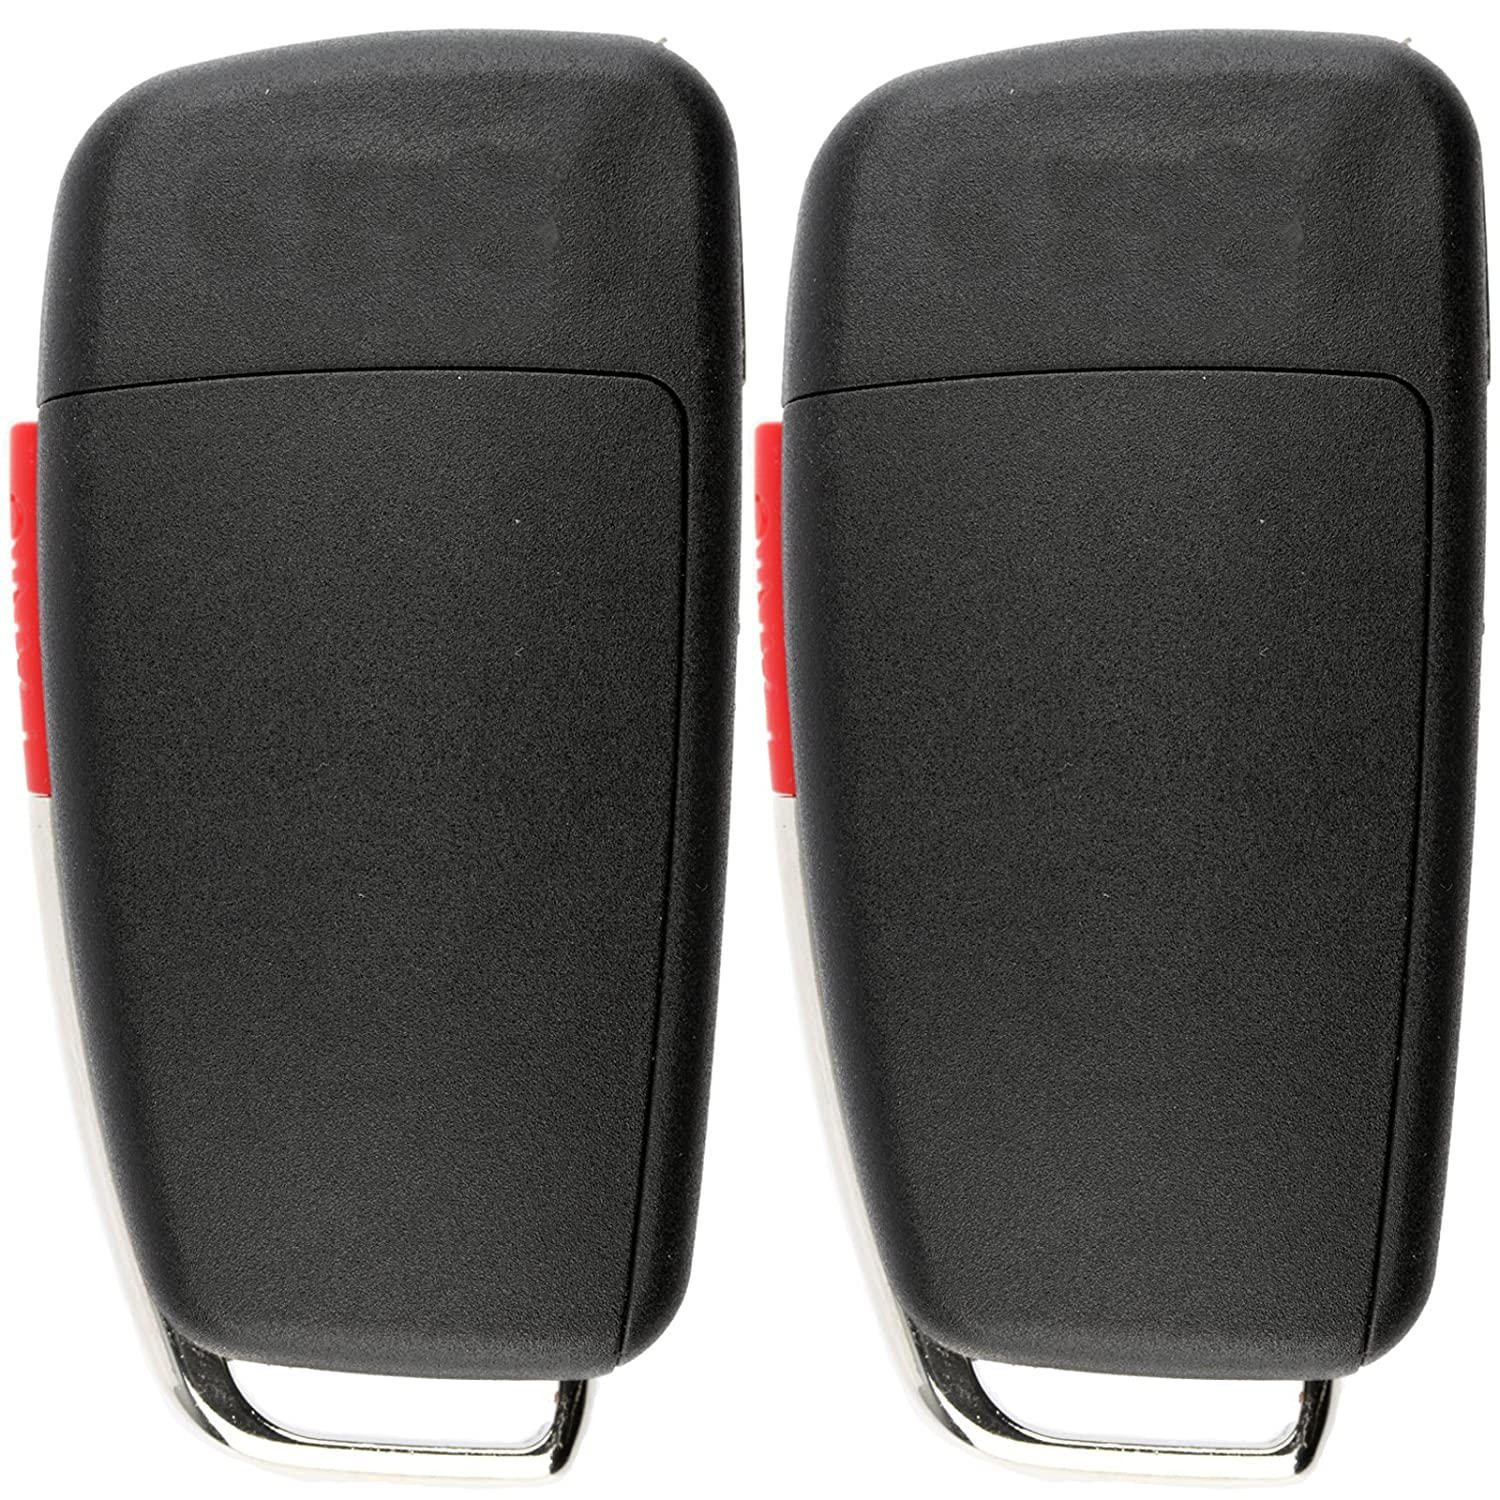 Pack of 2 KeylessOption Keyless Entry Remote Control Car Uncut Ignition Key Fob Replacement for Audi MYT-4073A